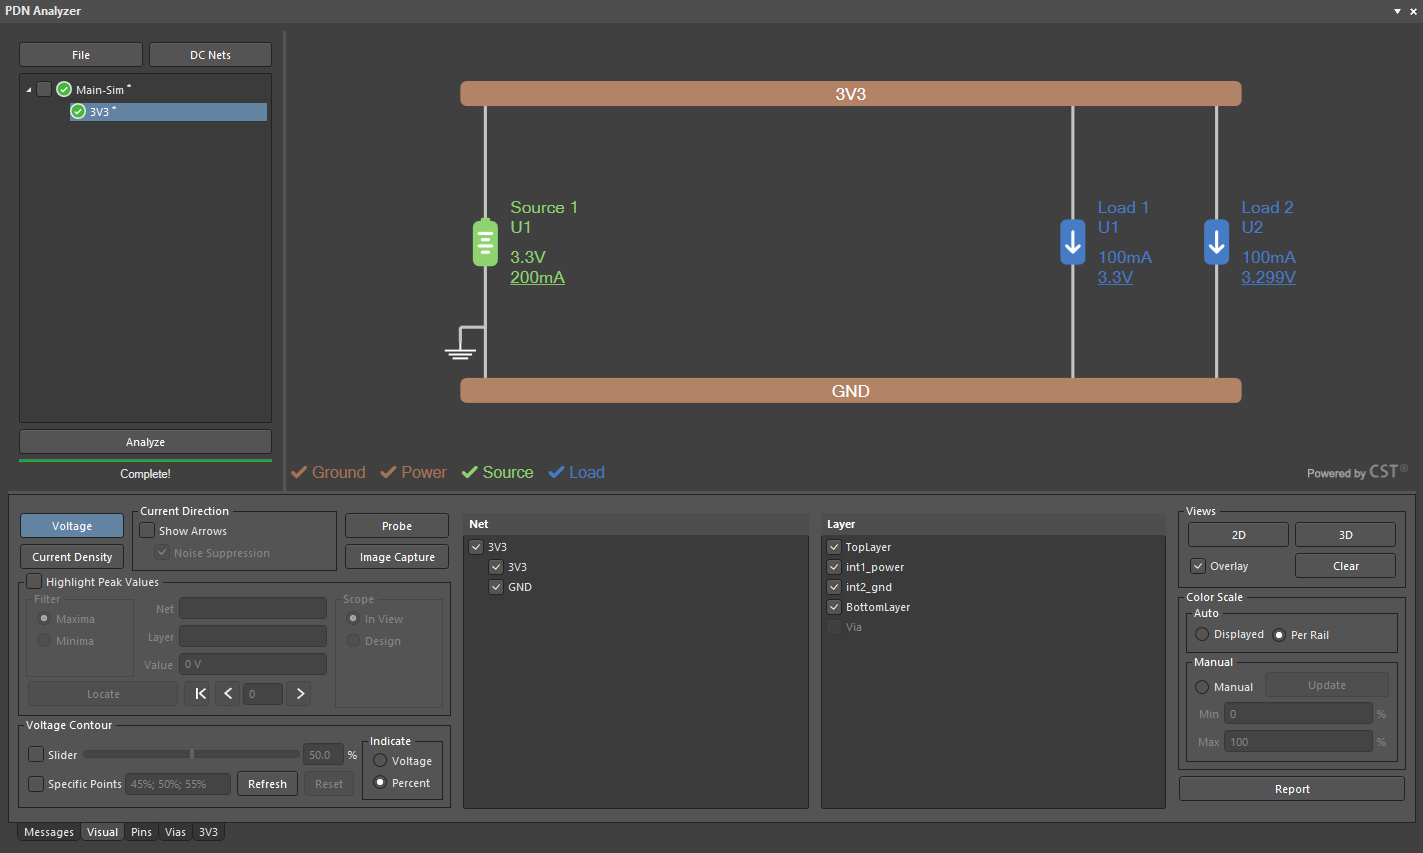 Screenshot of the PDN Analyzer output in Altium Designer